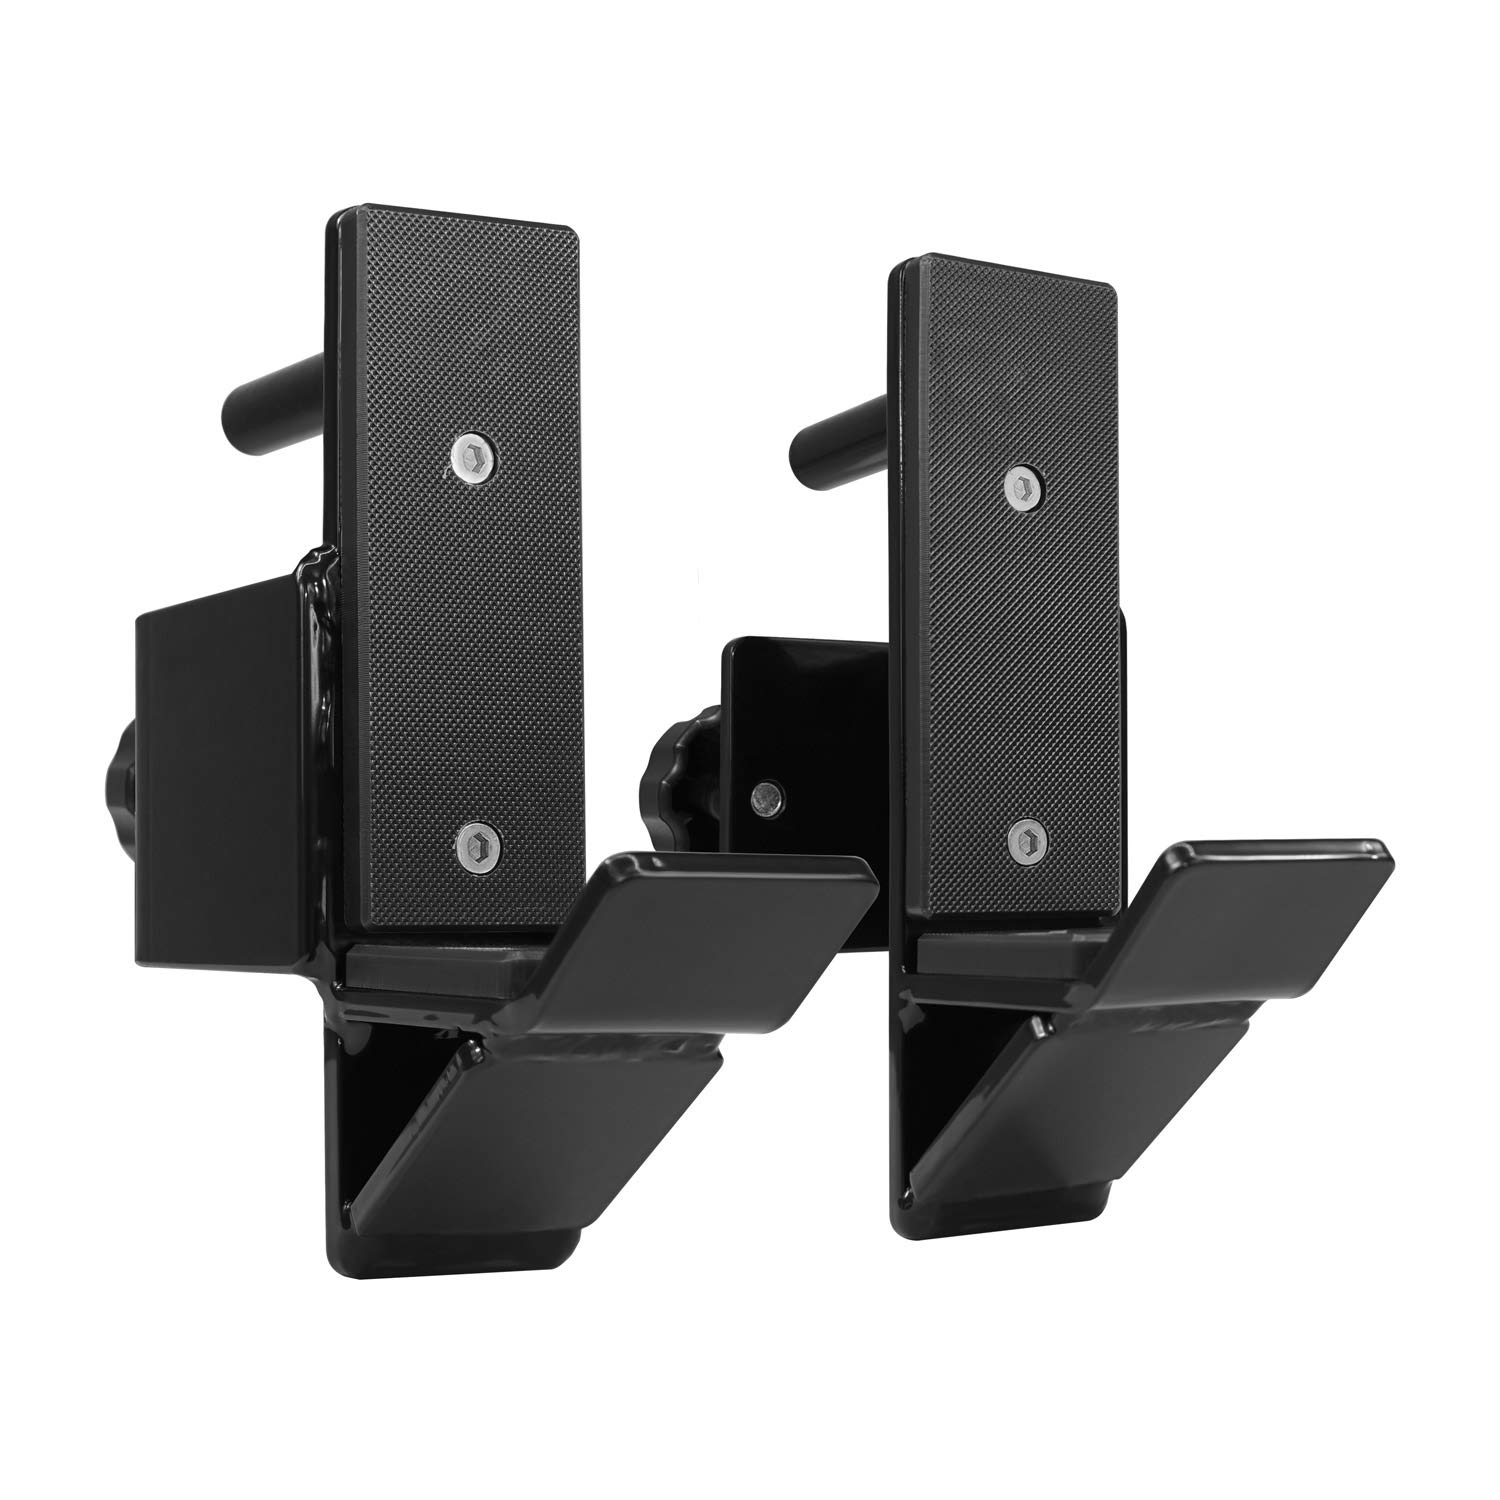 Yes4All J-Hooks Barbell Holder for Power Rack - Fit 2x2, 2x3, 3x3 Square Tube (Pair) (Black - J-Hook 2x3) by Yes4All (Image #1)